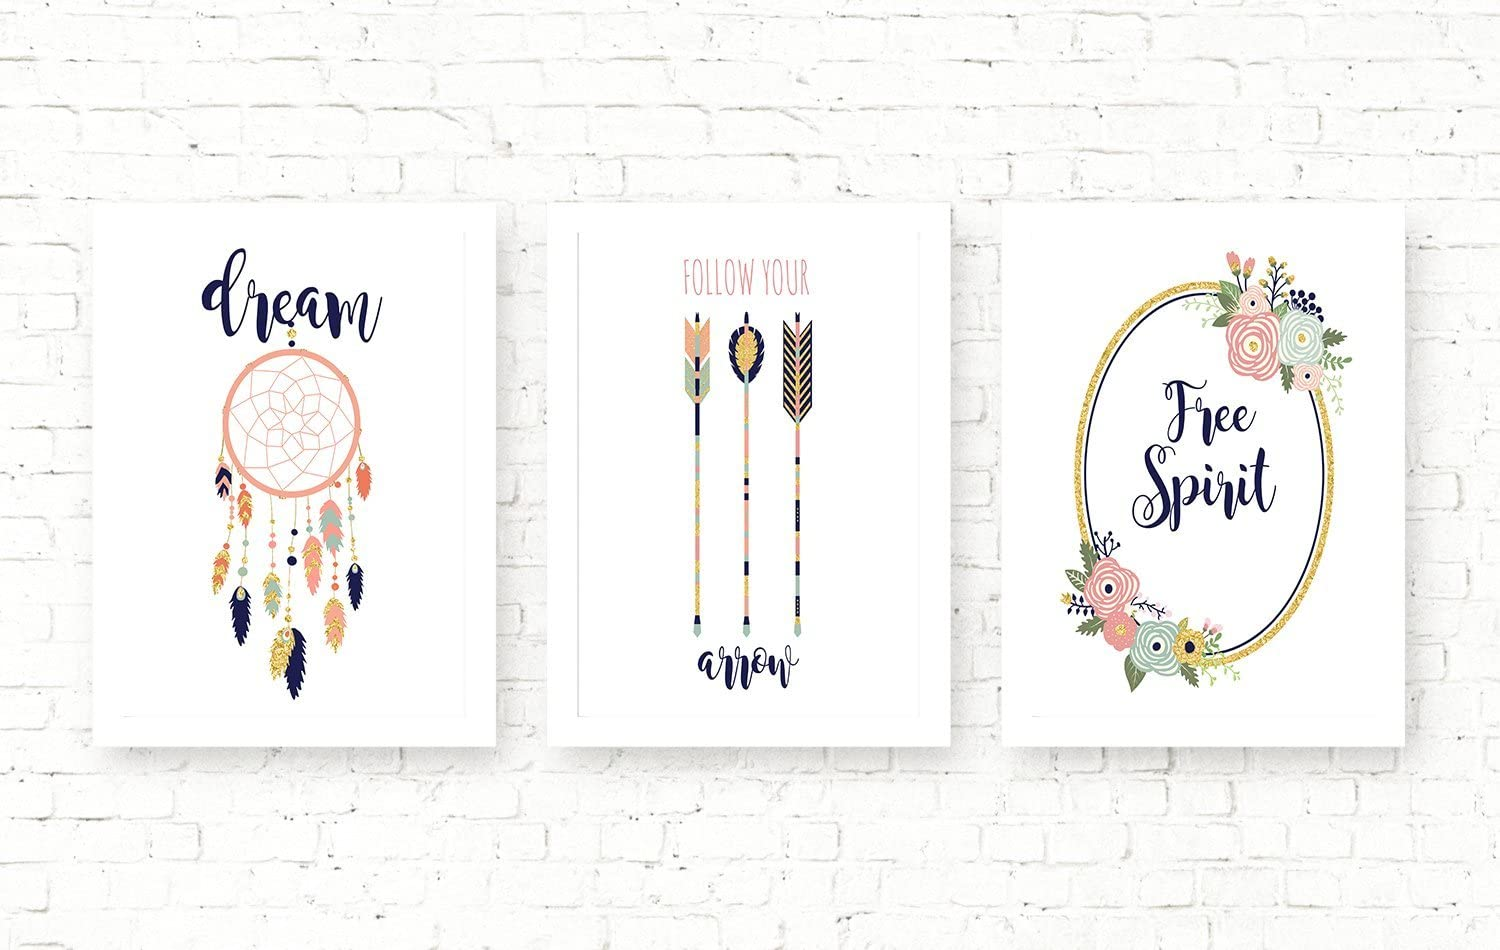 Silly Goose Gifts Free Spirit Boho Tribal Themed Pink Navy Teal Wall Room Art Prints (Set of 3: Dream)